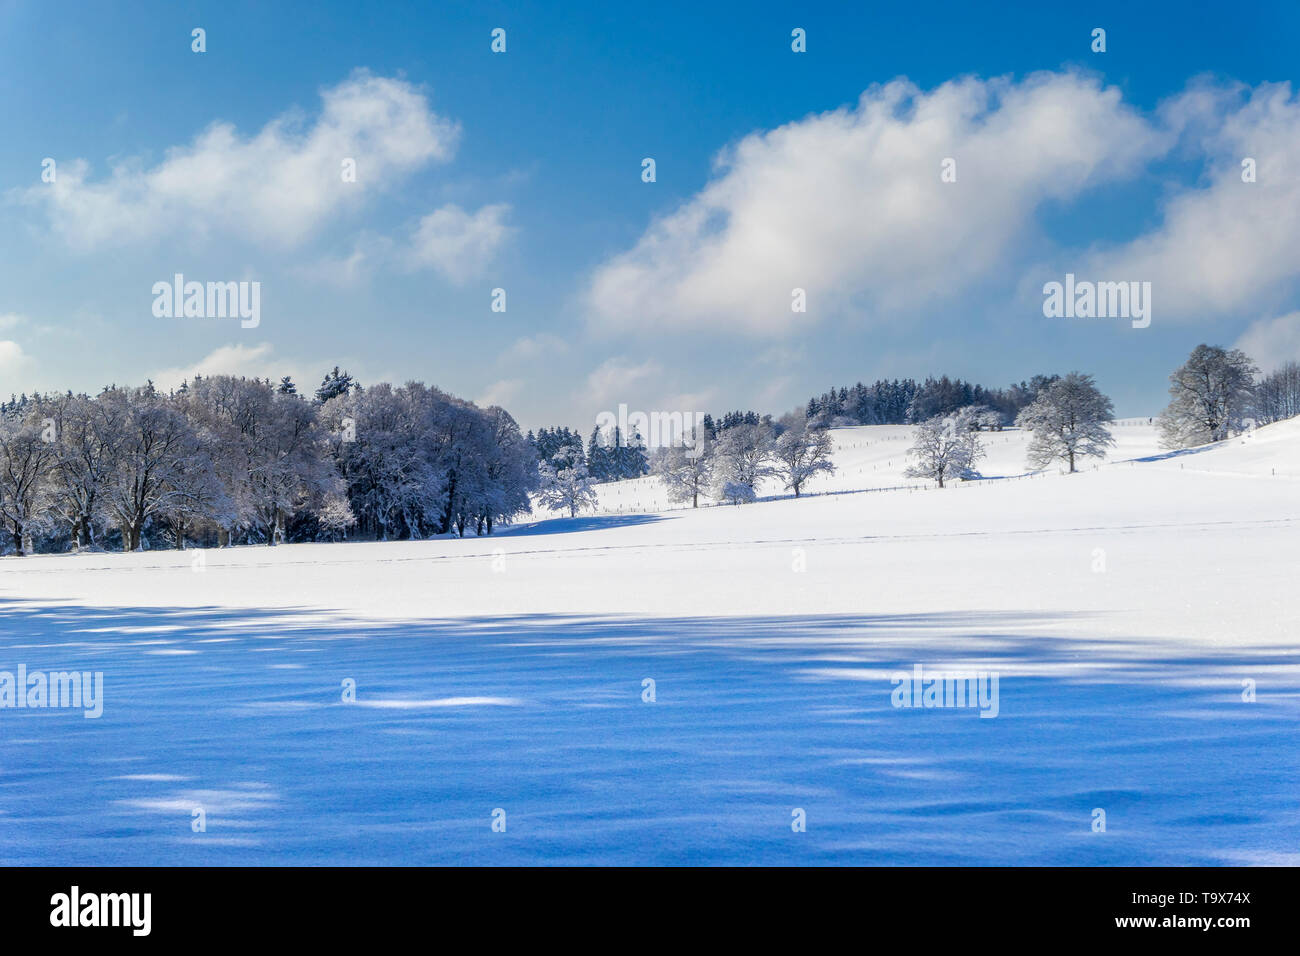 Nice winter scenery after fresh snowfall on the Ilkahöhe, Tutzing, Bavaria, Germany, Europe, Schöne Winterlandschaft nach Neuschnee auf der Ilkahöhe,  Stock Photo